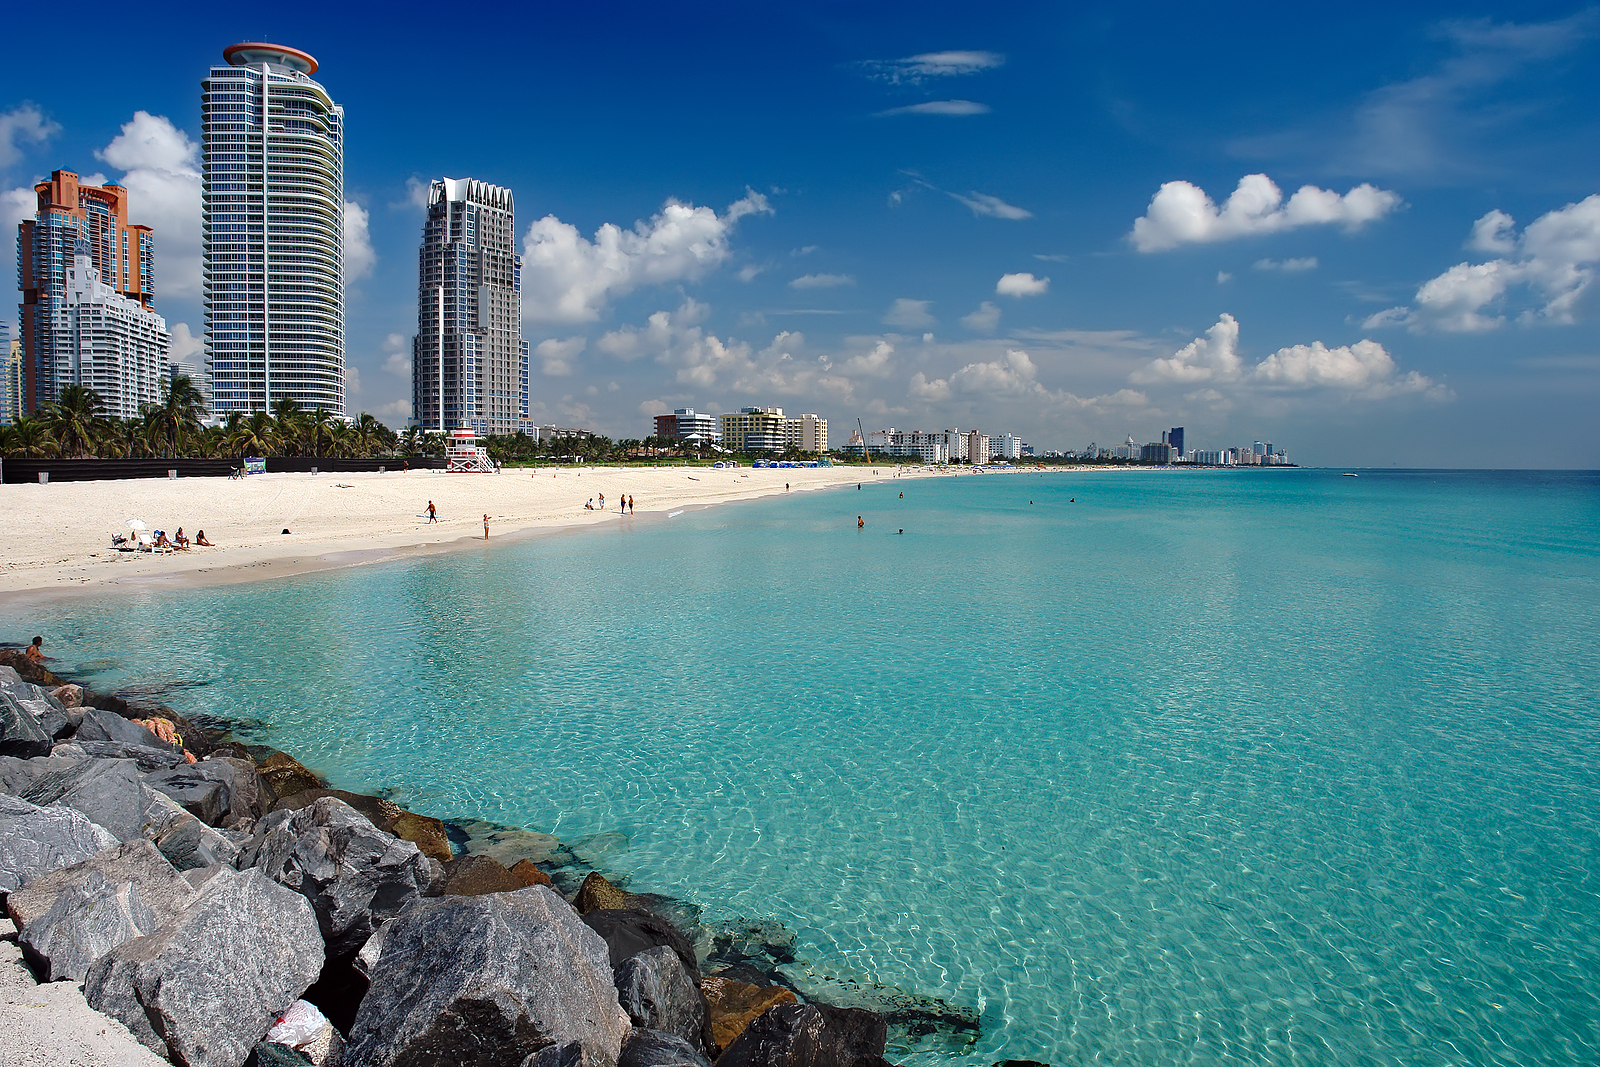 miami beach attractions  HD Photo Wallpaper Collection HD WALLPAPERS 1600x1067